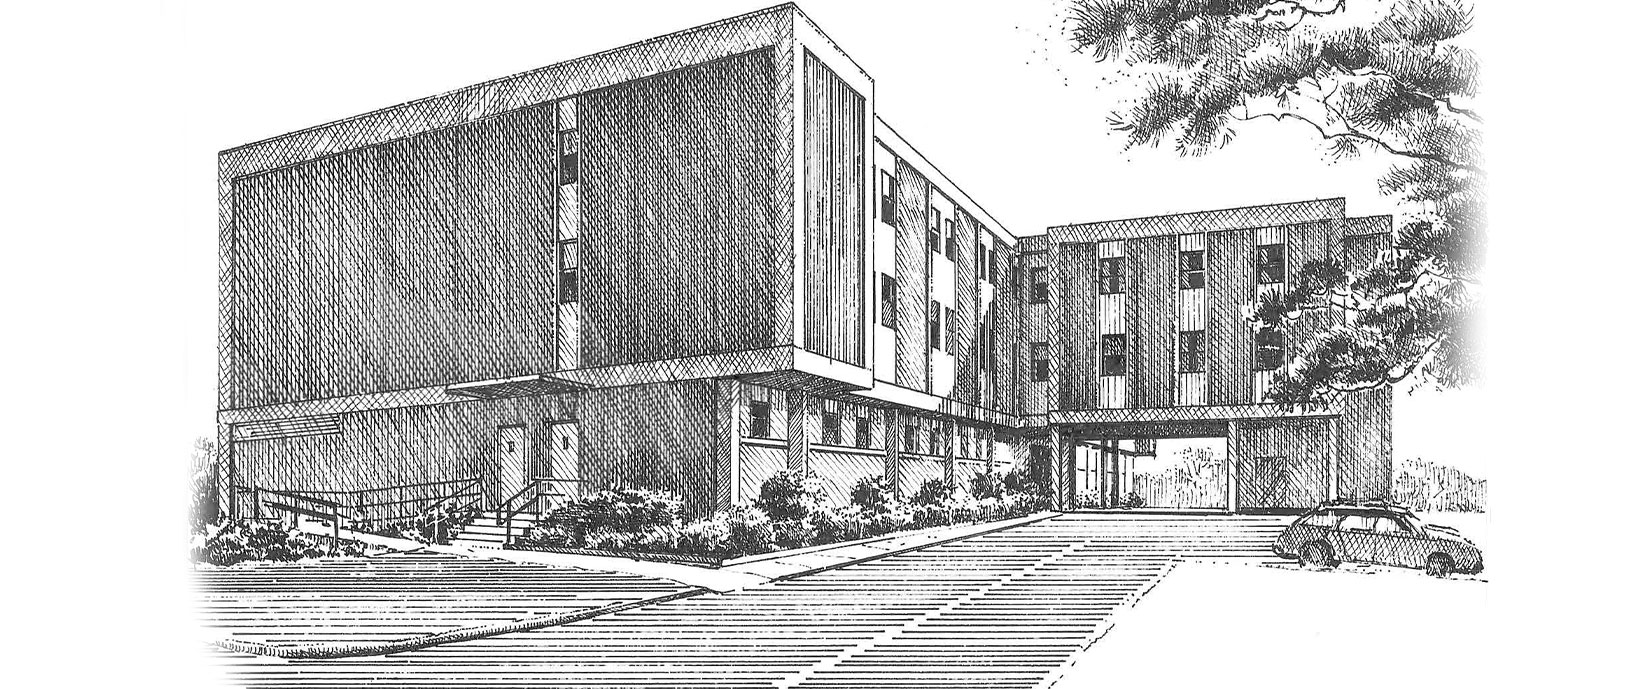 A sketch of the Mizell Memorial Hospital